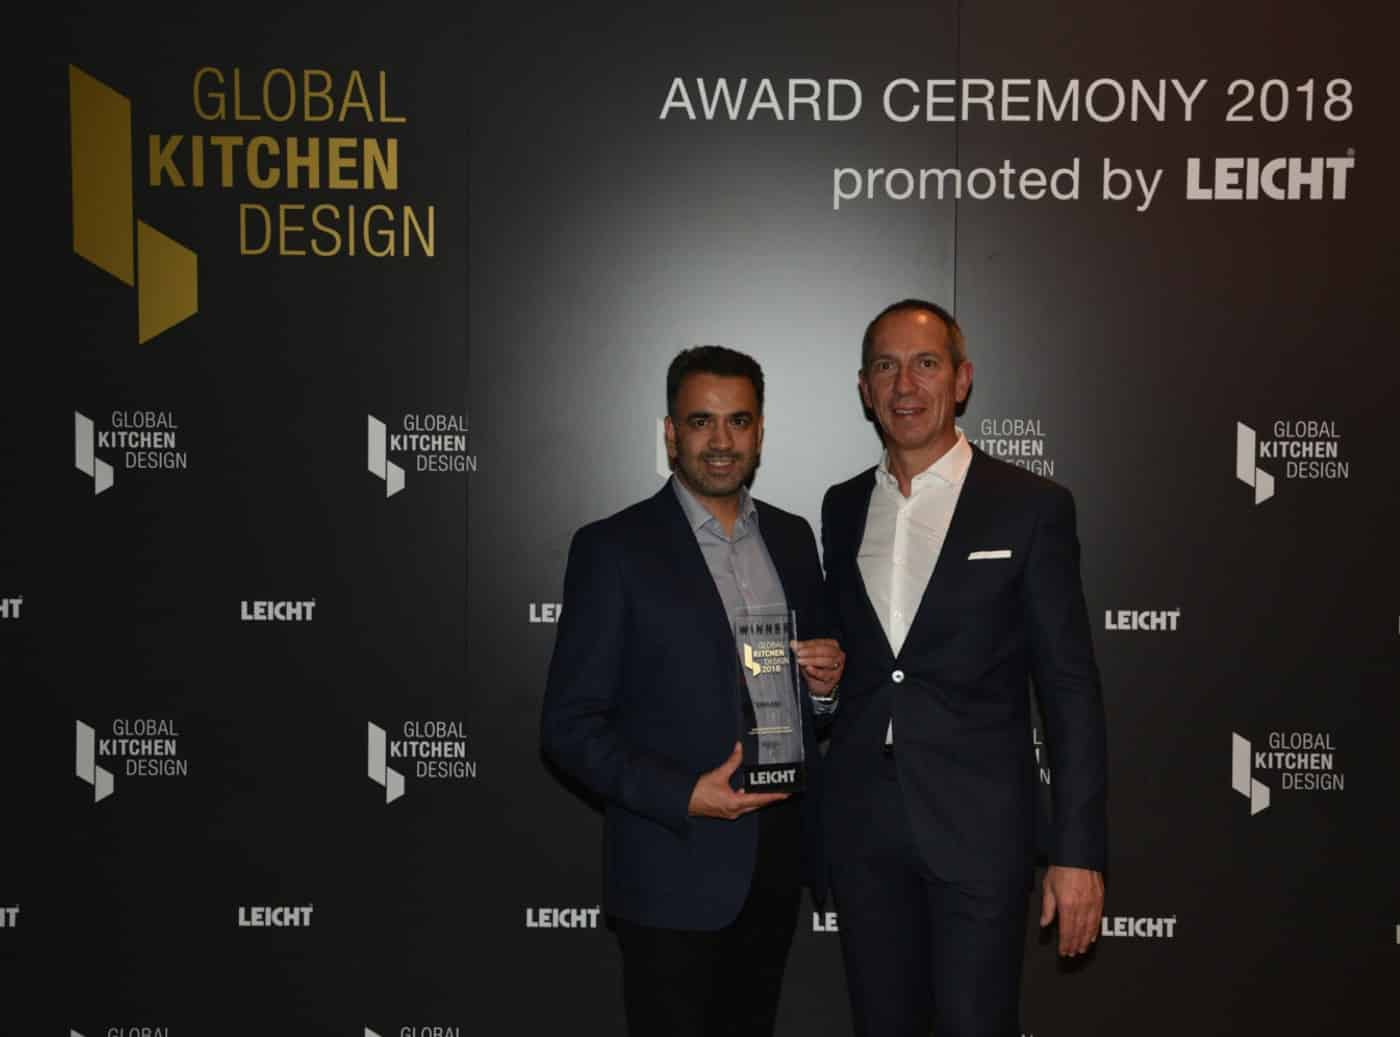 LEICHT Global Kitchen Design Awards